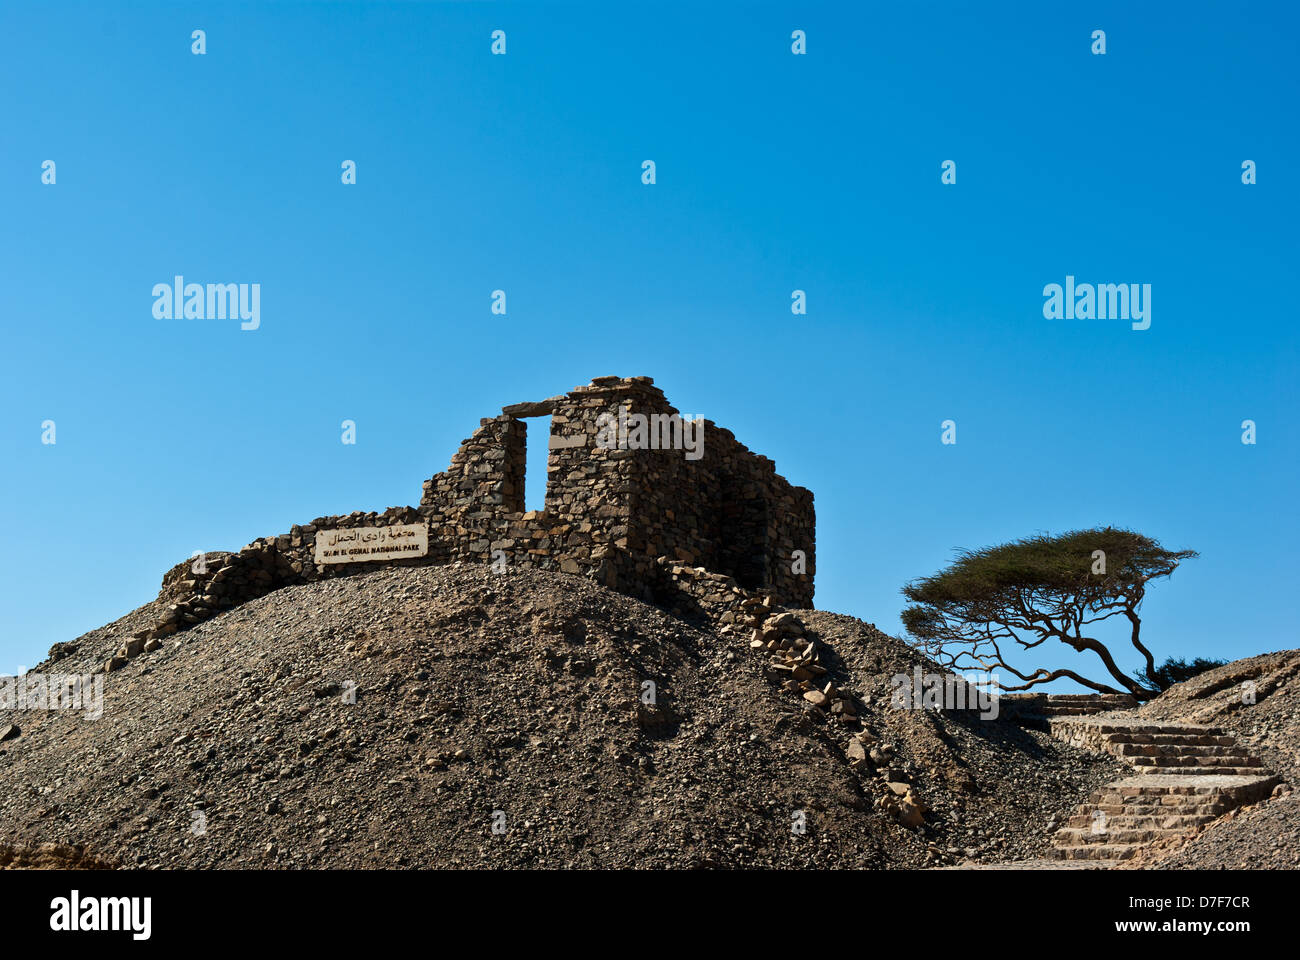 Landscape with ruins and acacias near Wadi Gamal (also spelled as Gemel, Gimal, Gemal or Jimal) National Park, Upper - Stock Image